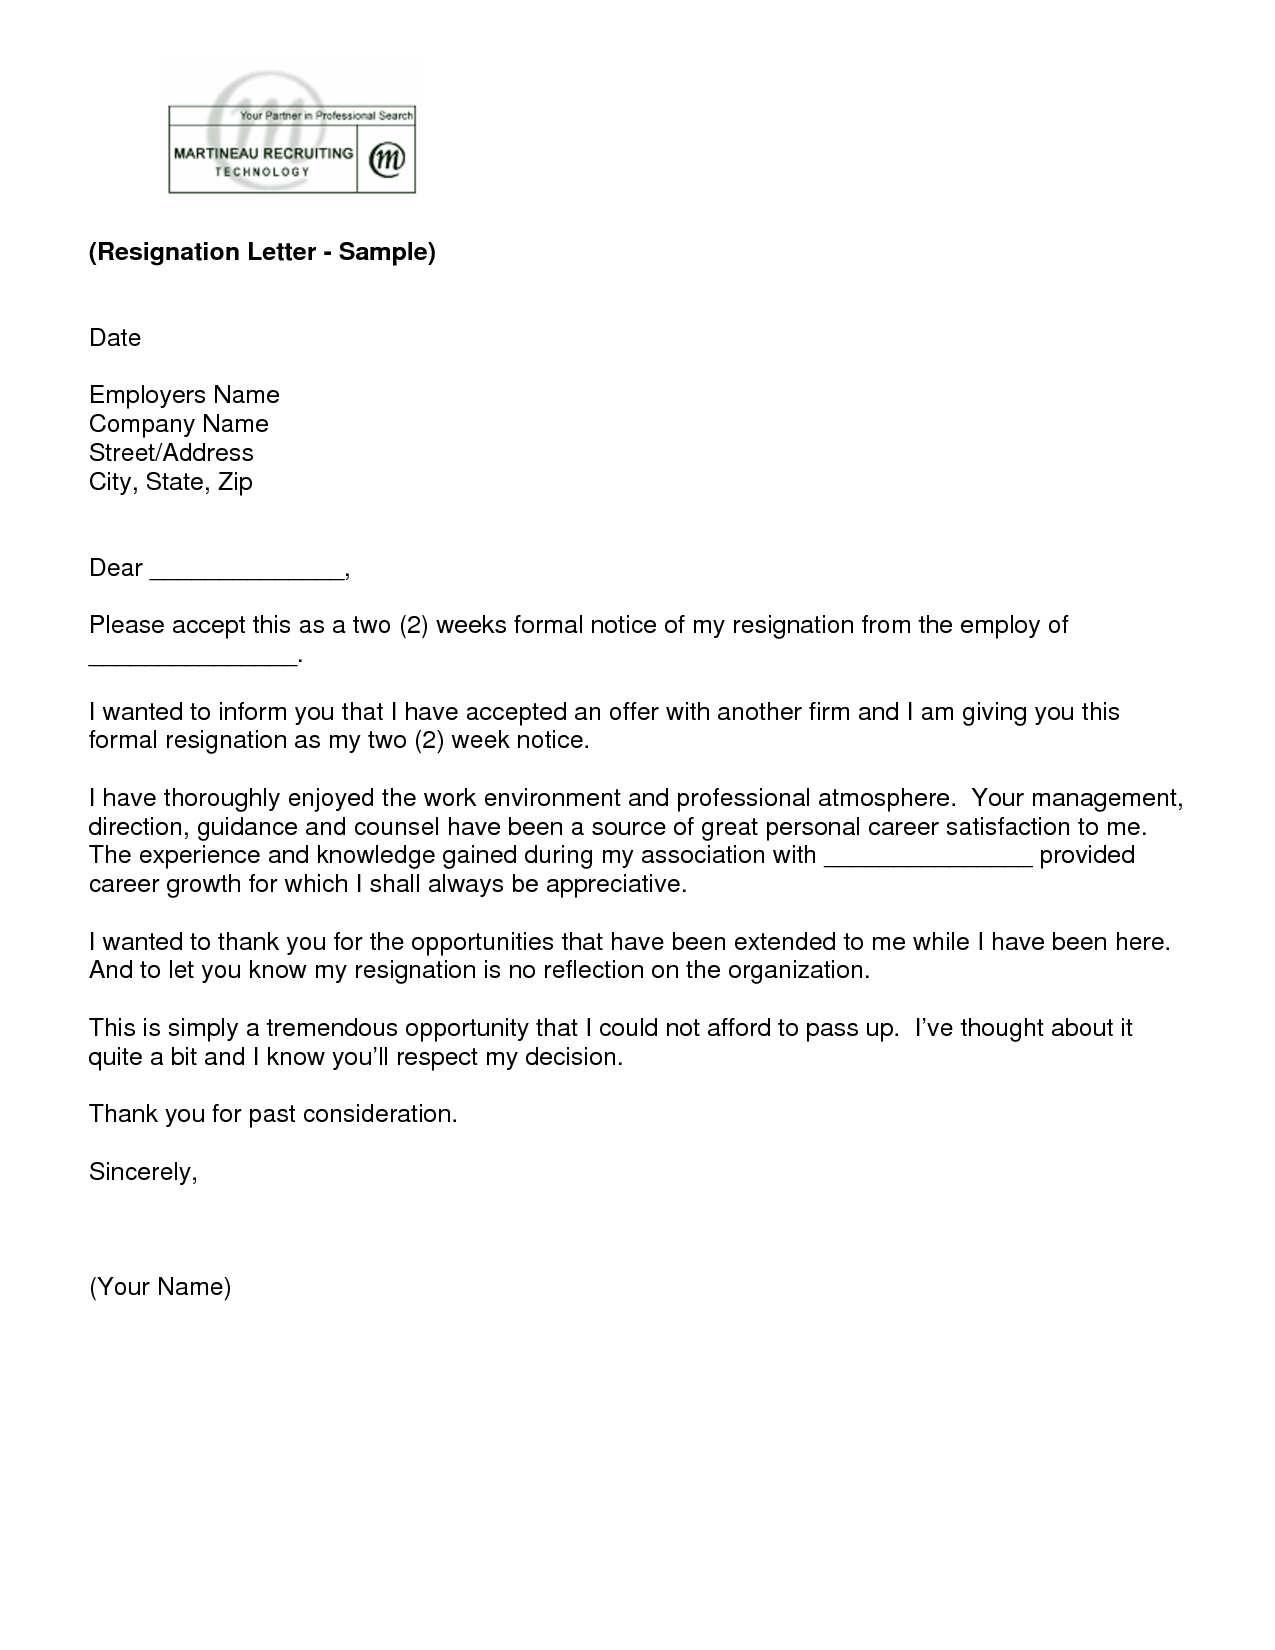 2 Week Resignation Letter Template - Letter Of Resignation 2 Weeks Notice Template